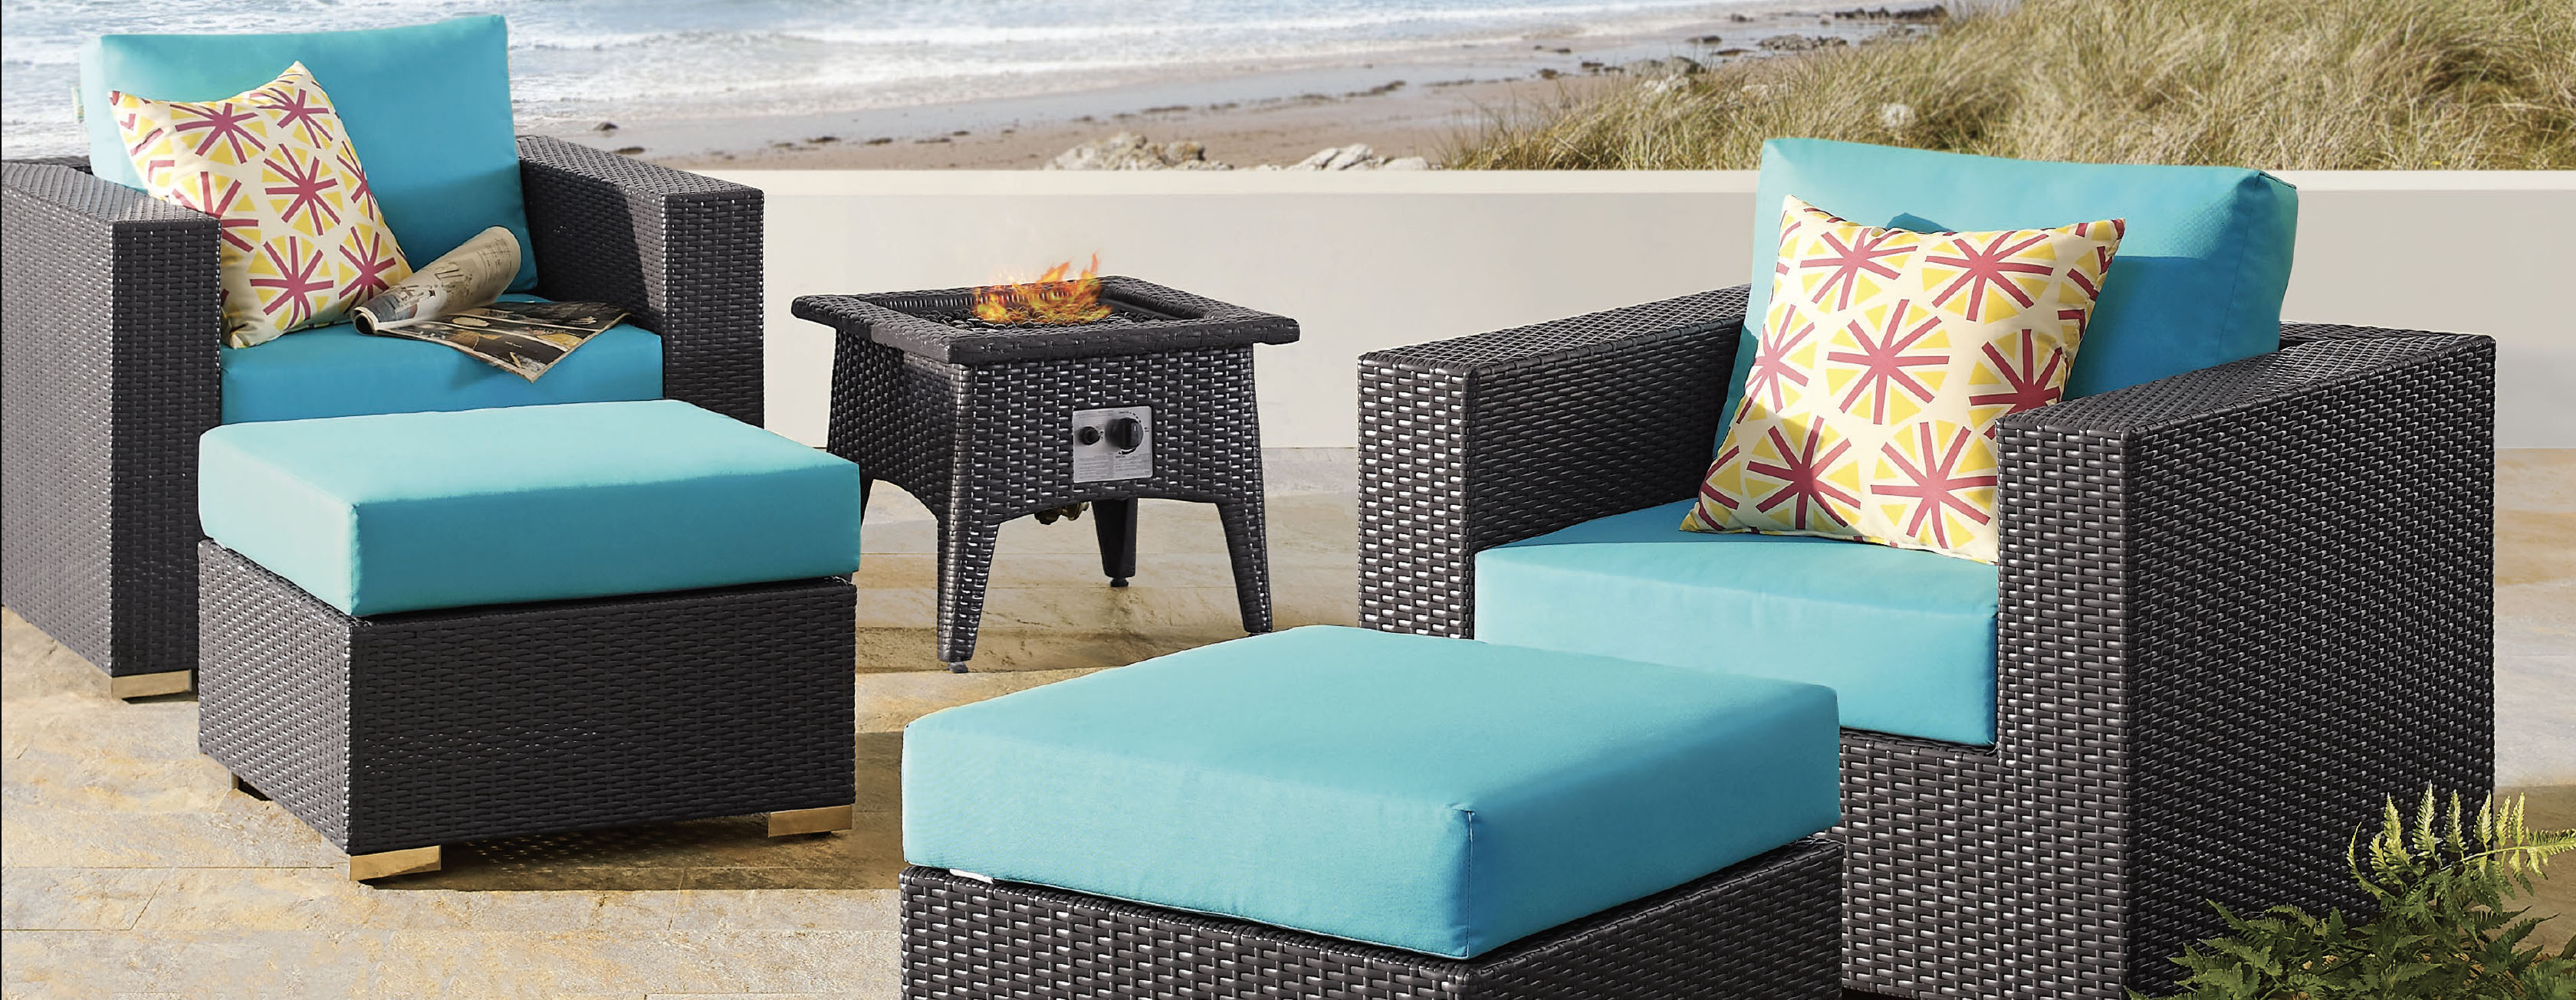 Envisage Chaise Outdoor Patio Wicker Rattan Lounge Chairs Regarding Most Popular Outdoor Daybeds Lounge Chairs & Swings (View 11 of 25)